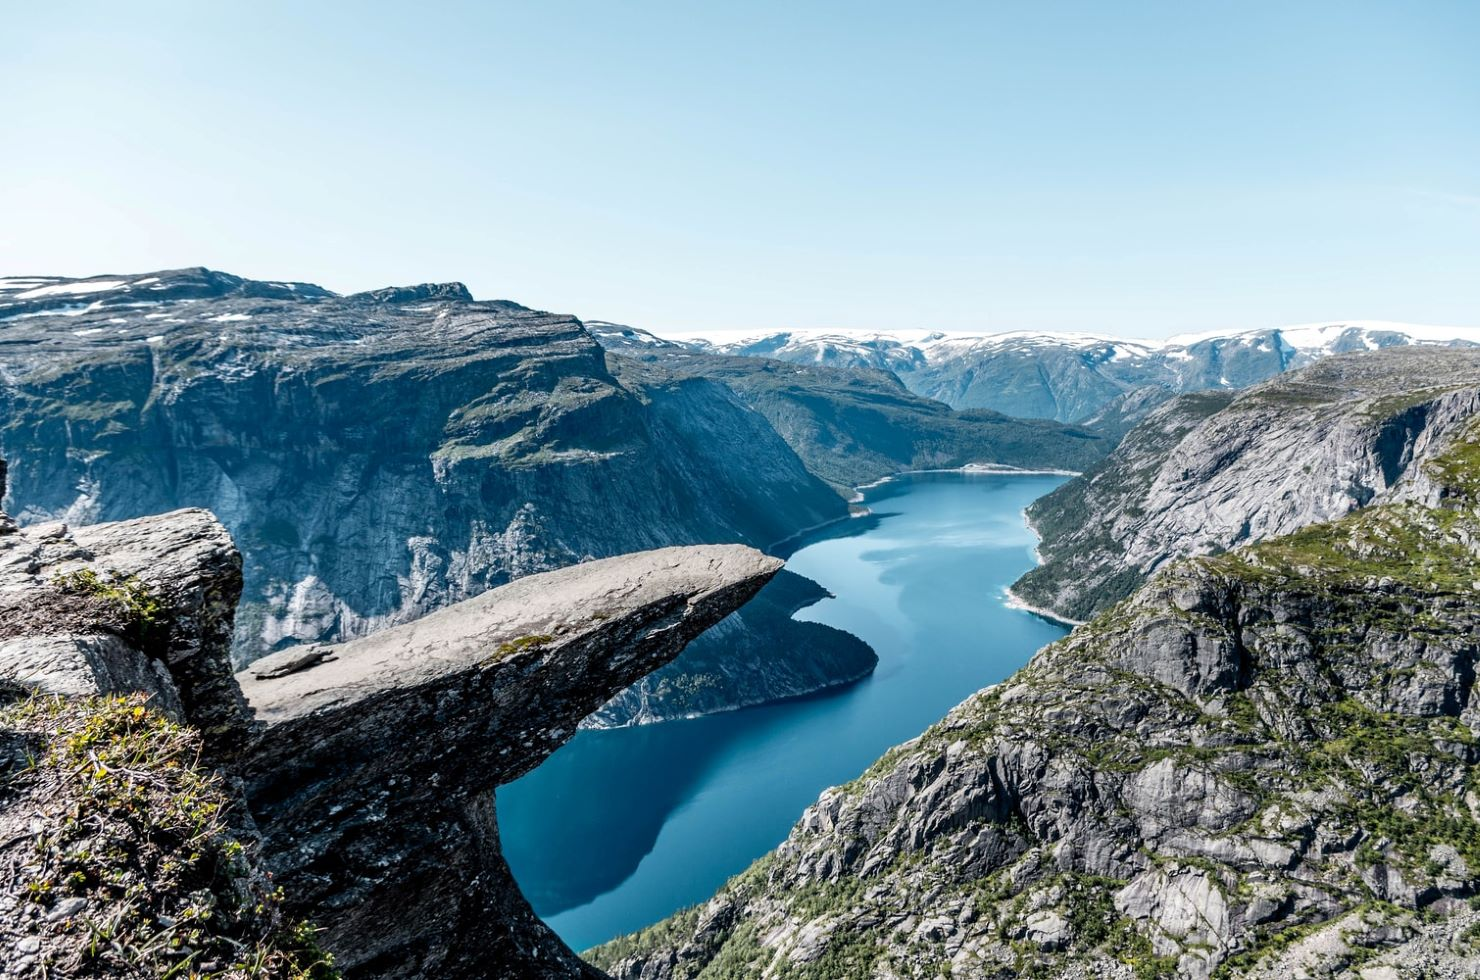 A majestic sight overlooking a fjord and the mountainous terrain in Norway